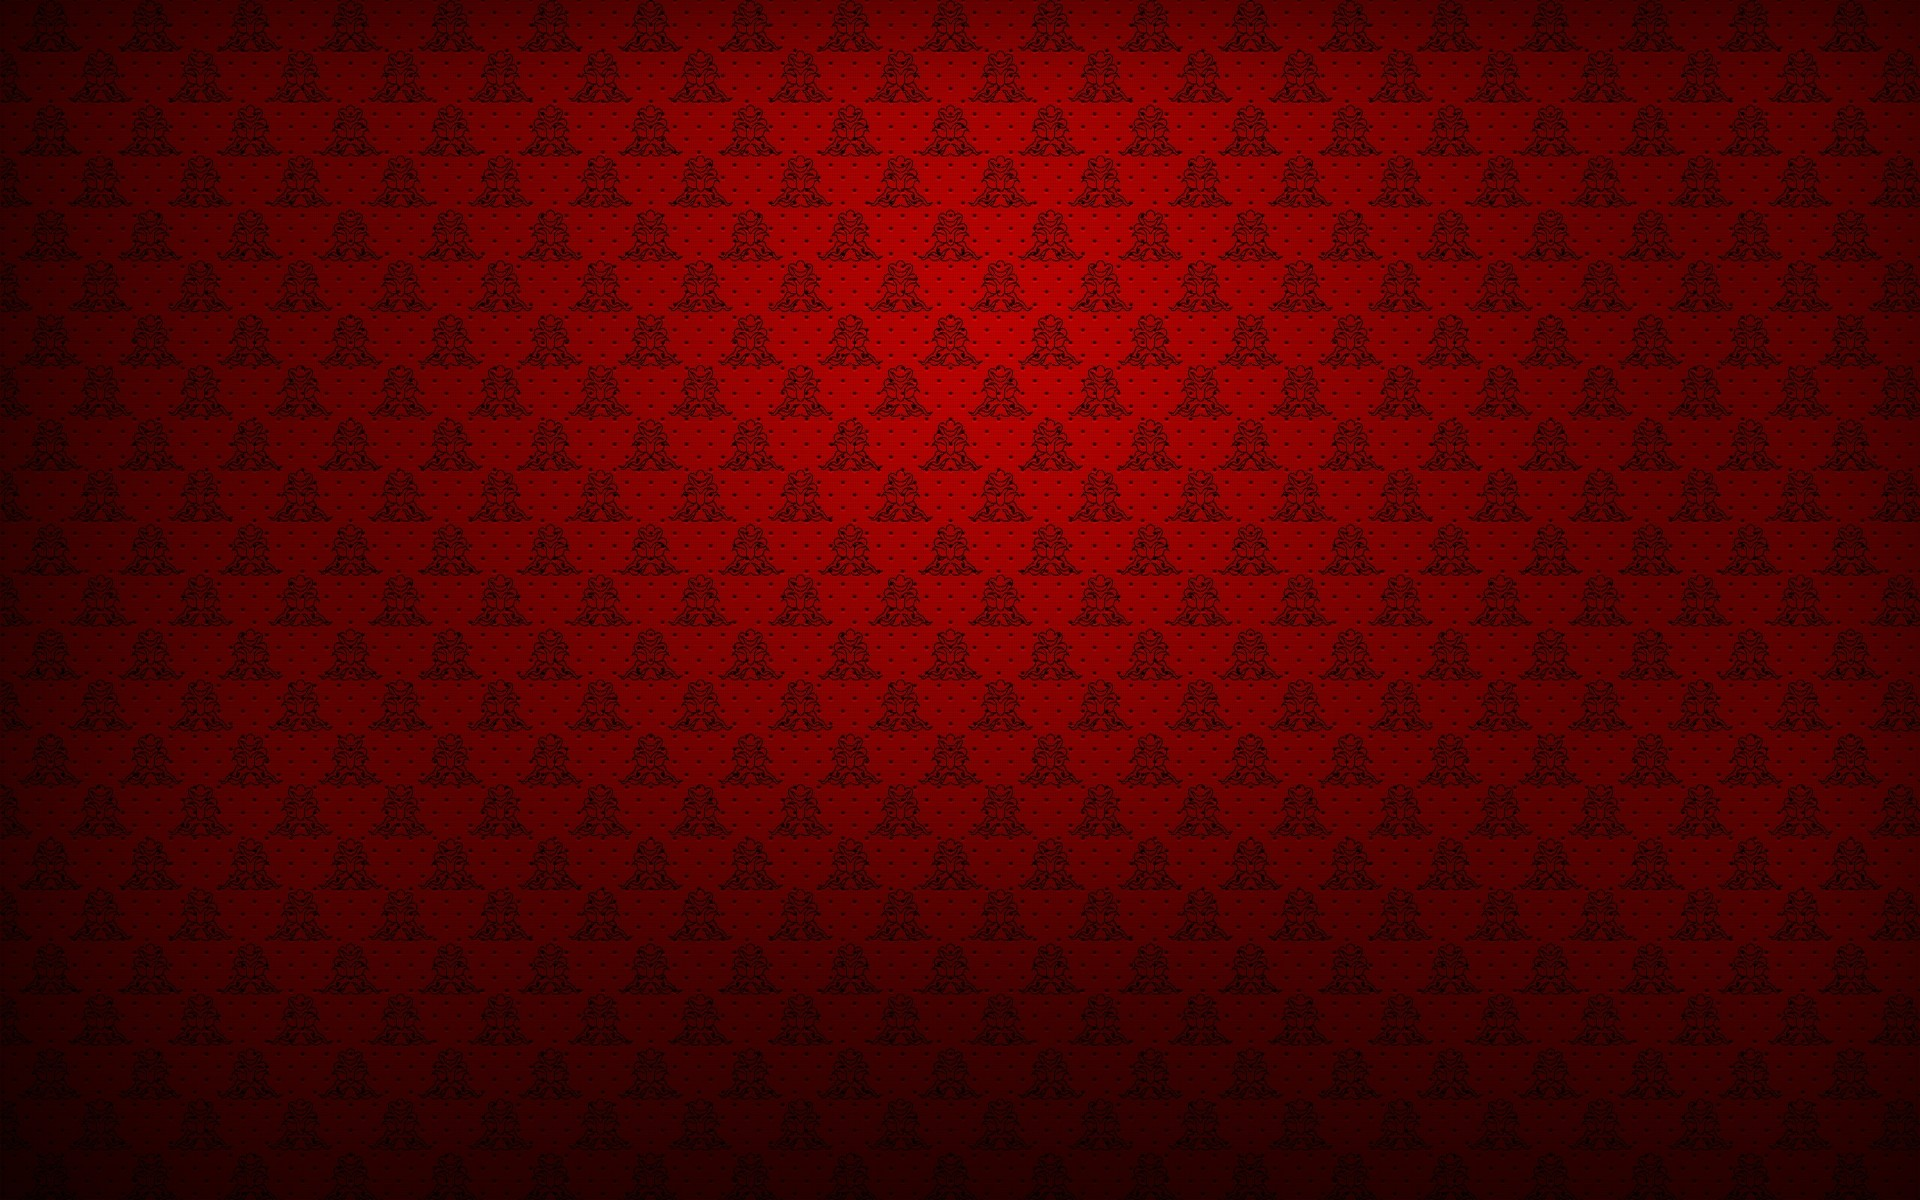 Red Abstraction Background Pattern 135.33 Kb